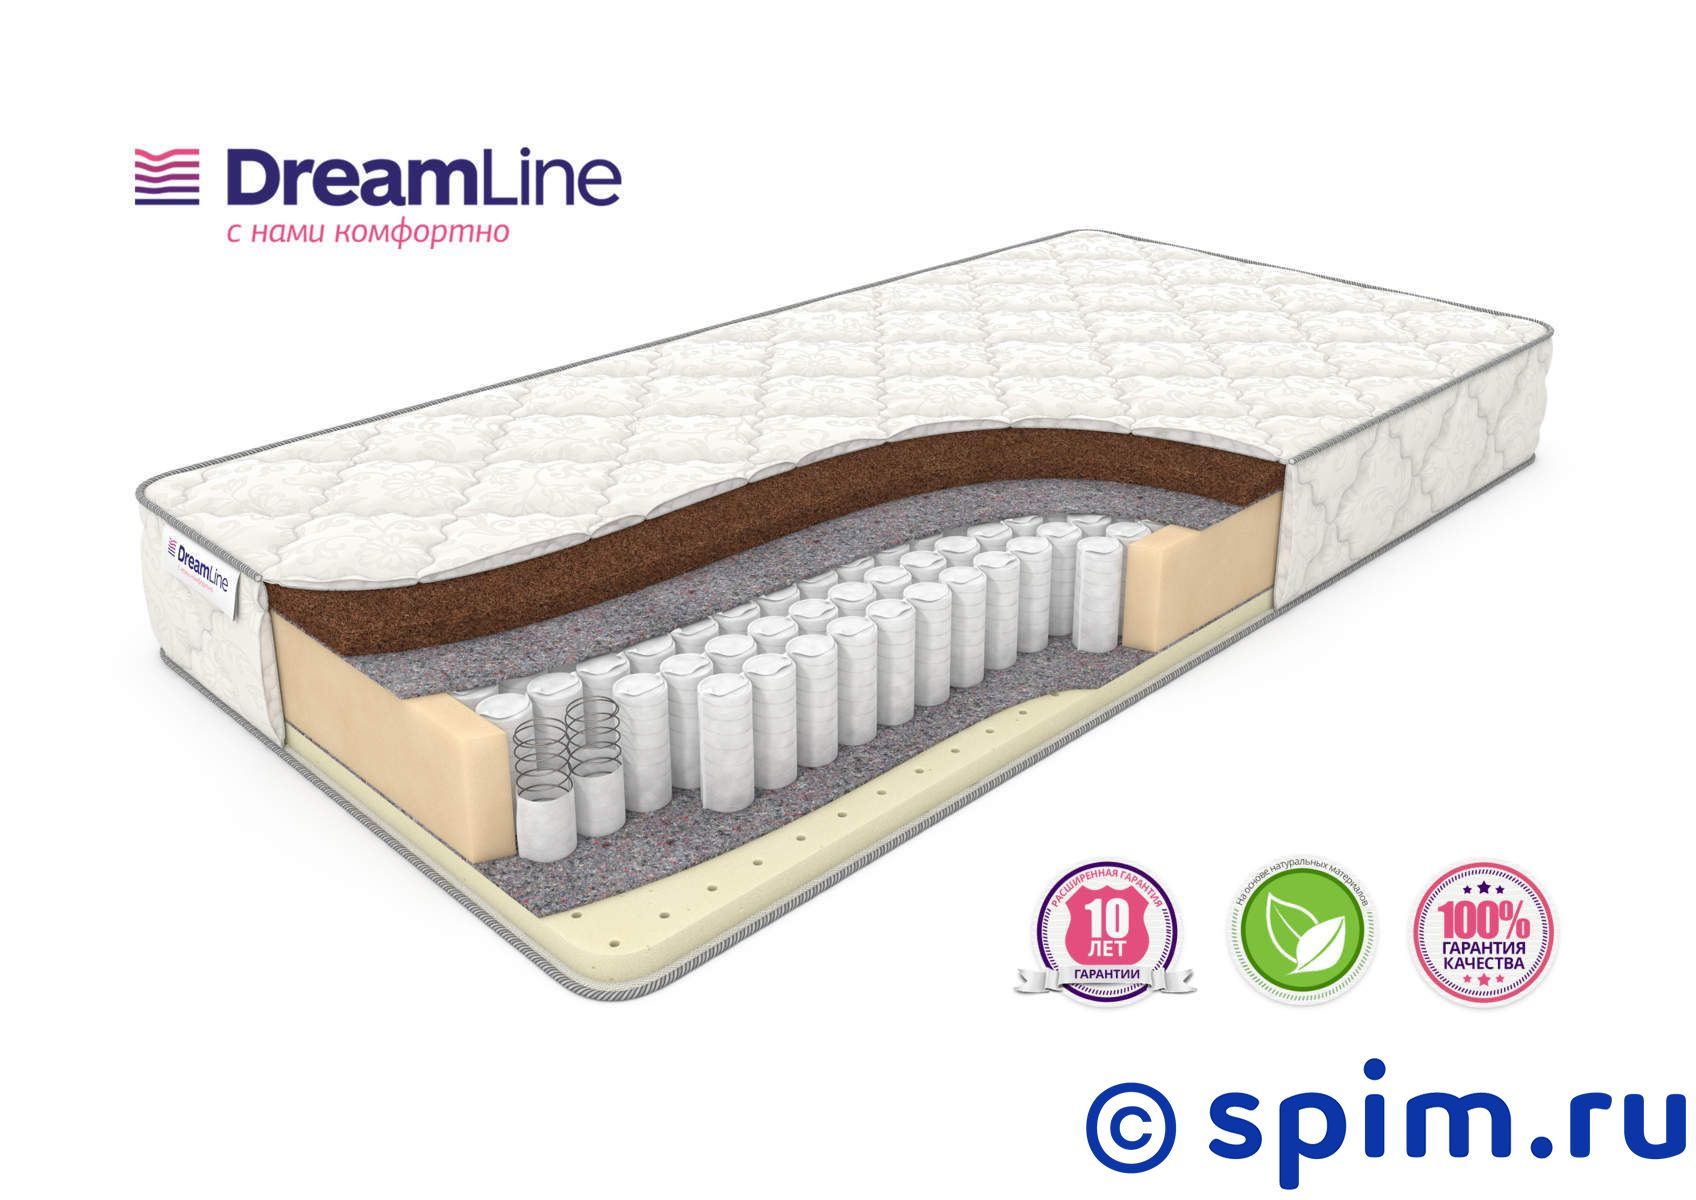 Матрас DreamLine SleepDream Tfk 200х195 см